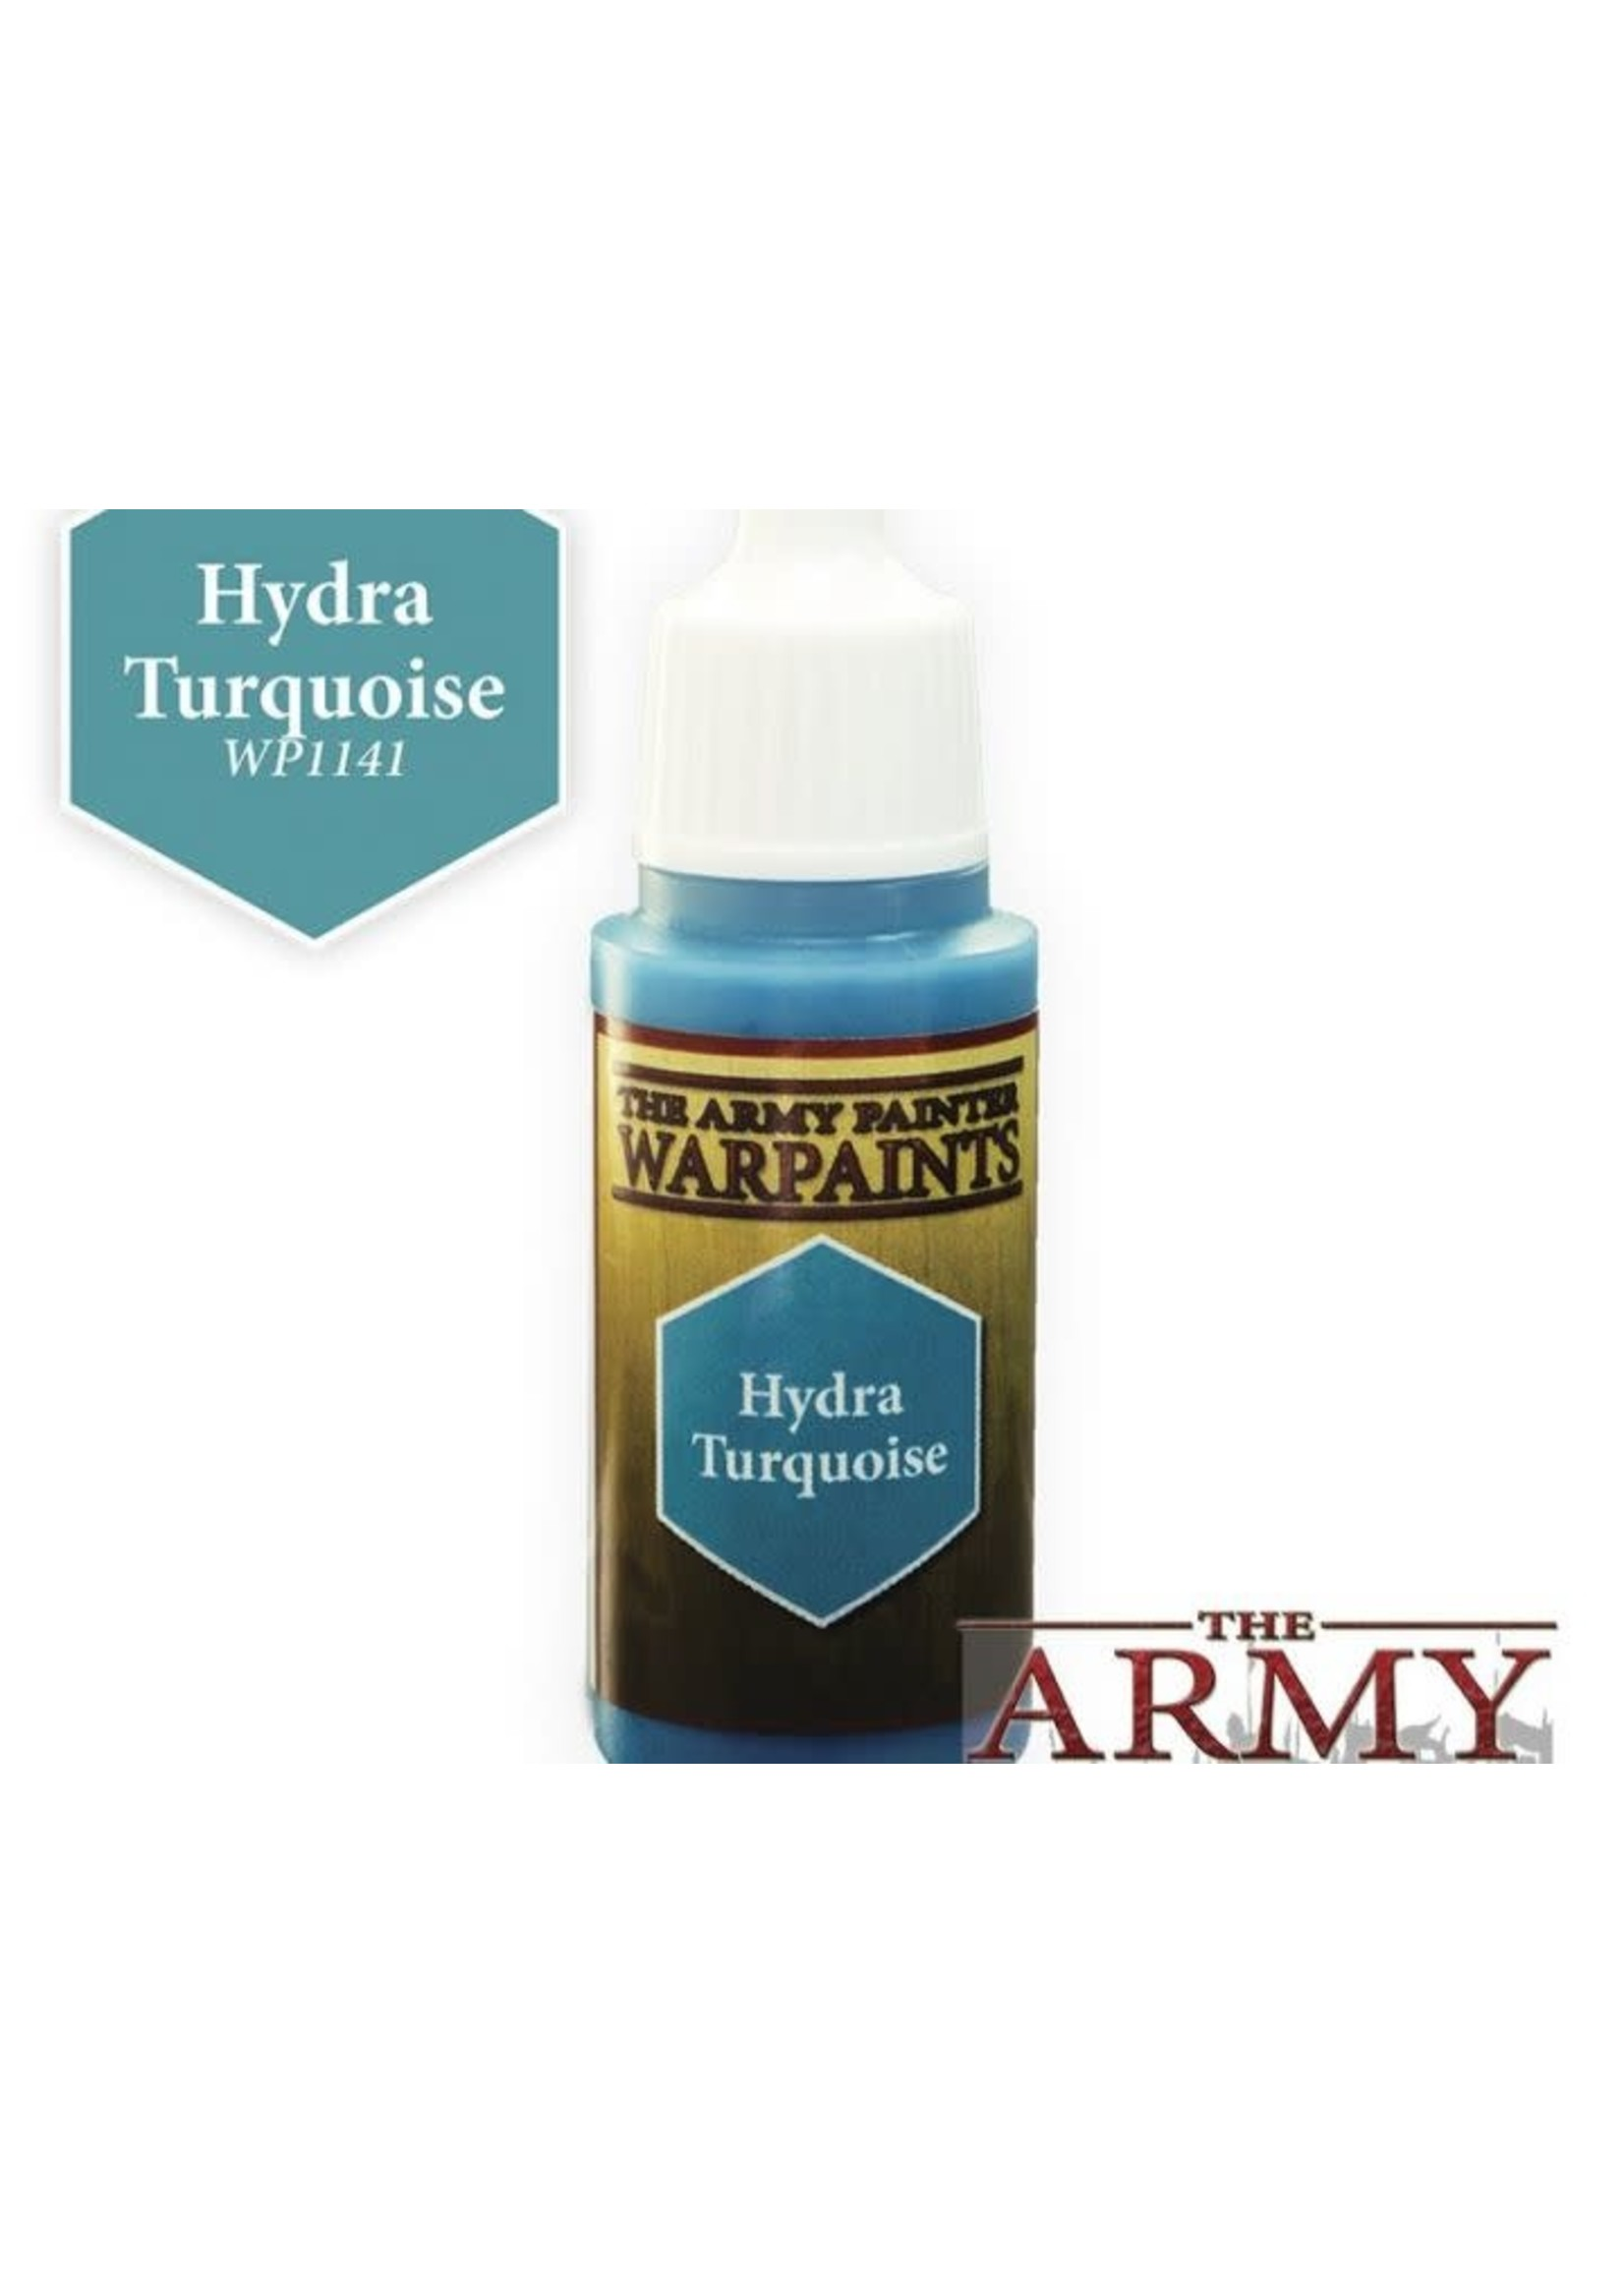 Army Painter Warpaints - Hydra Turquoise